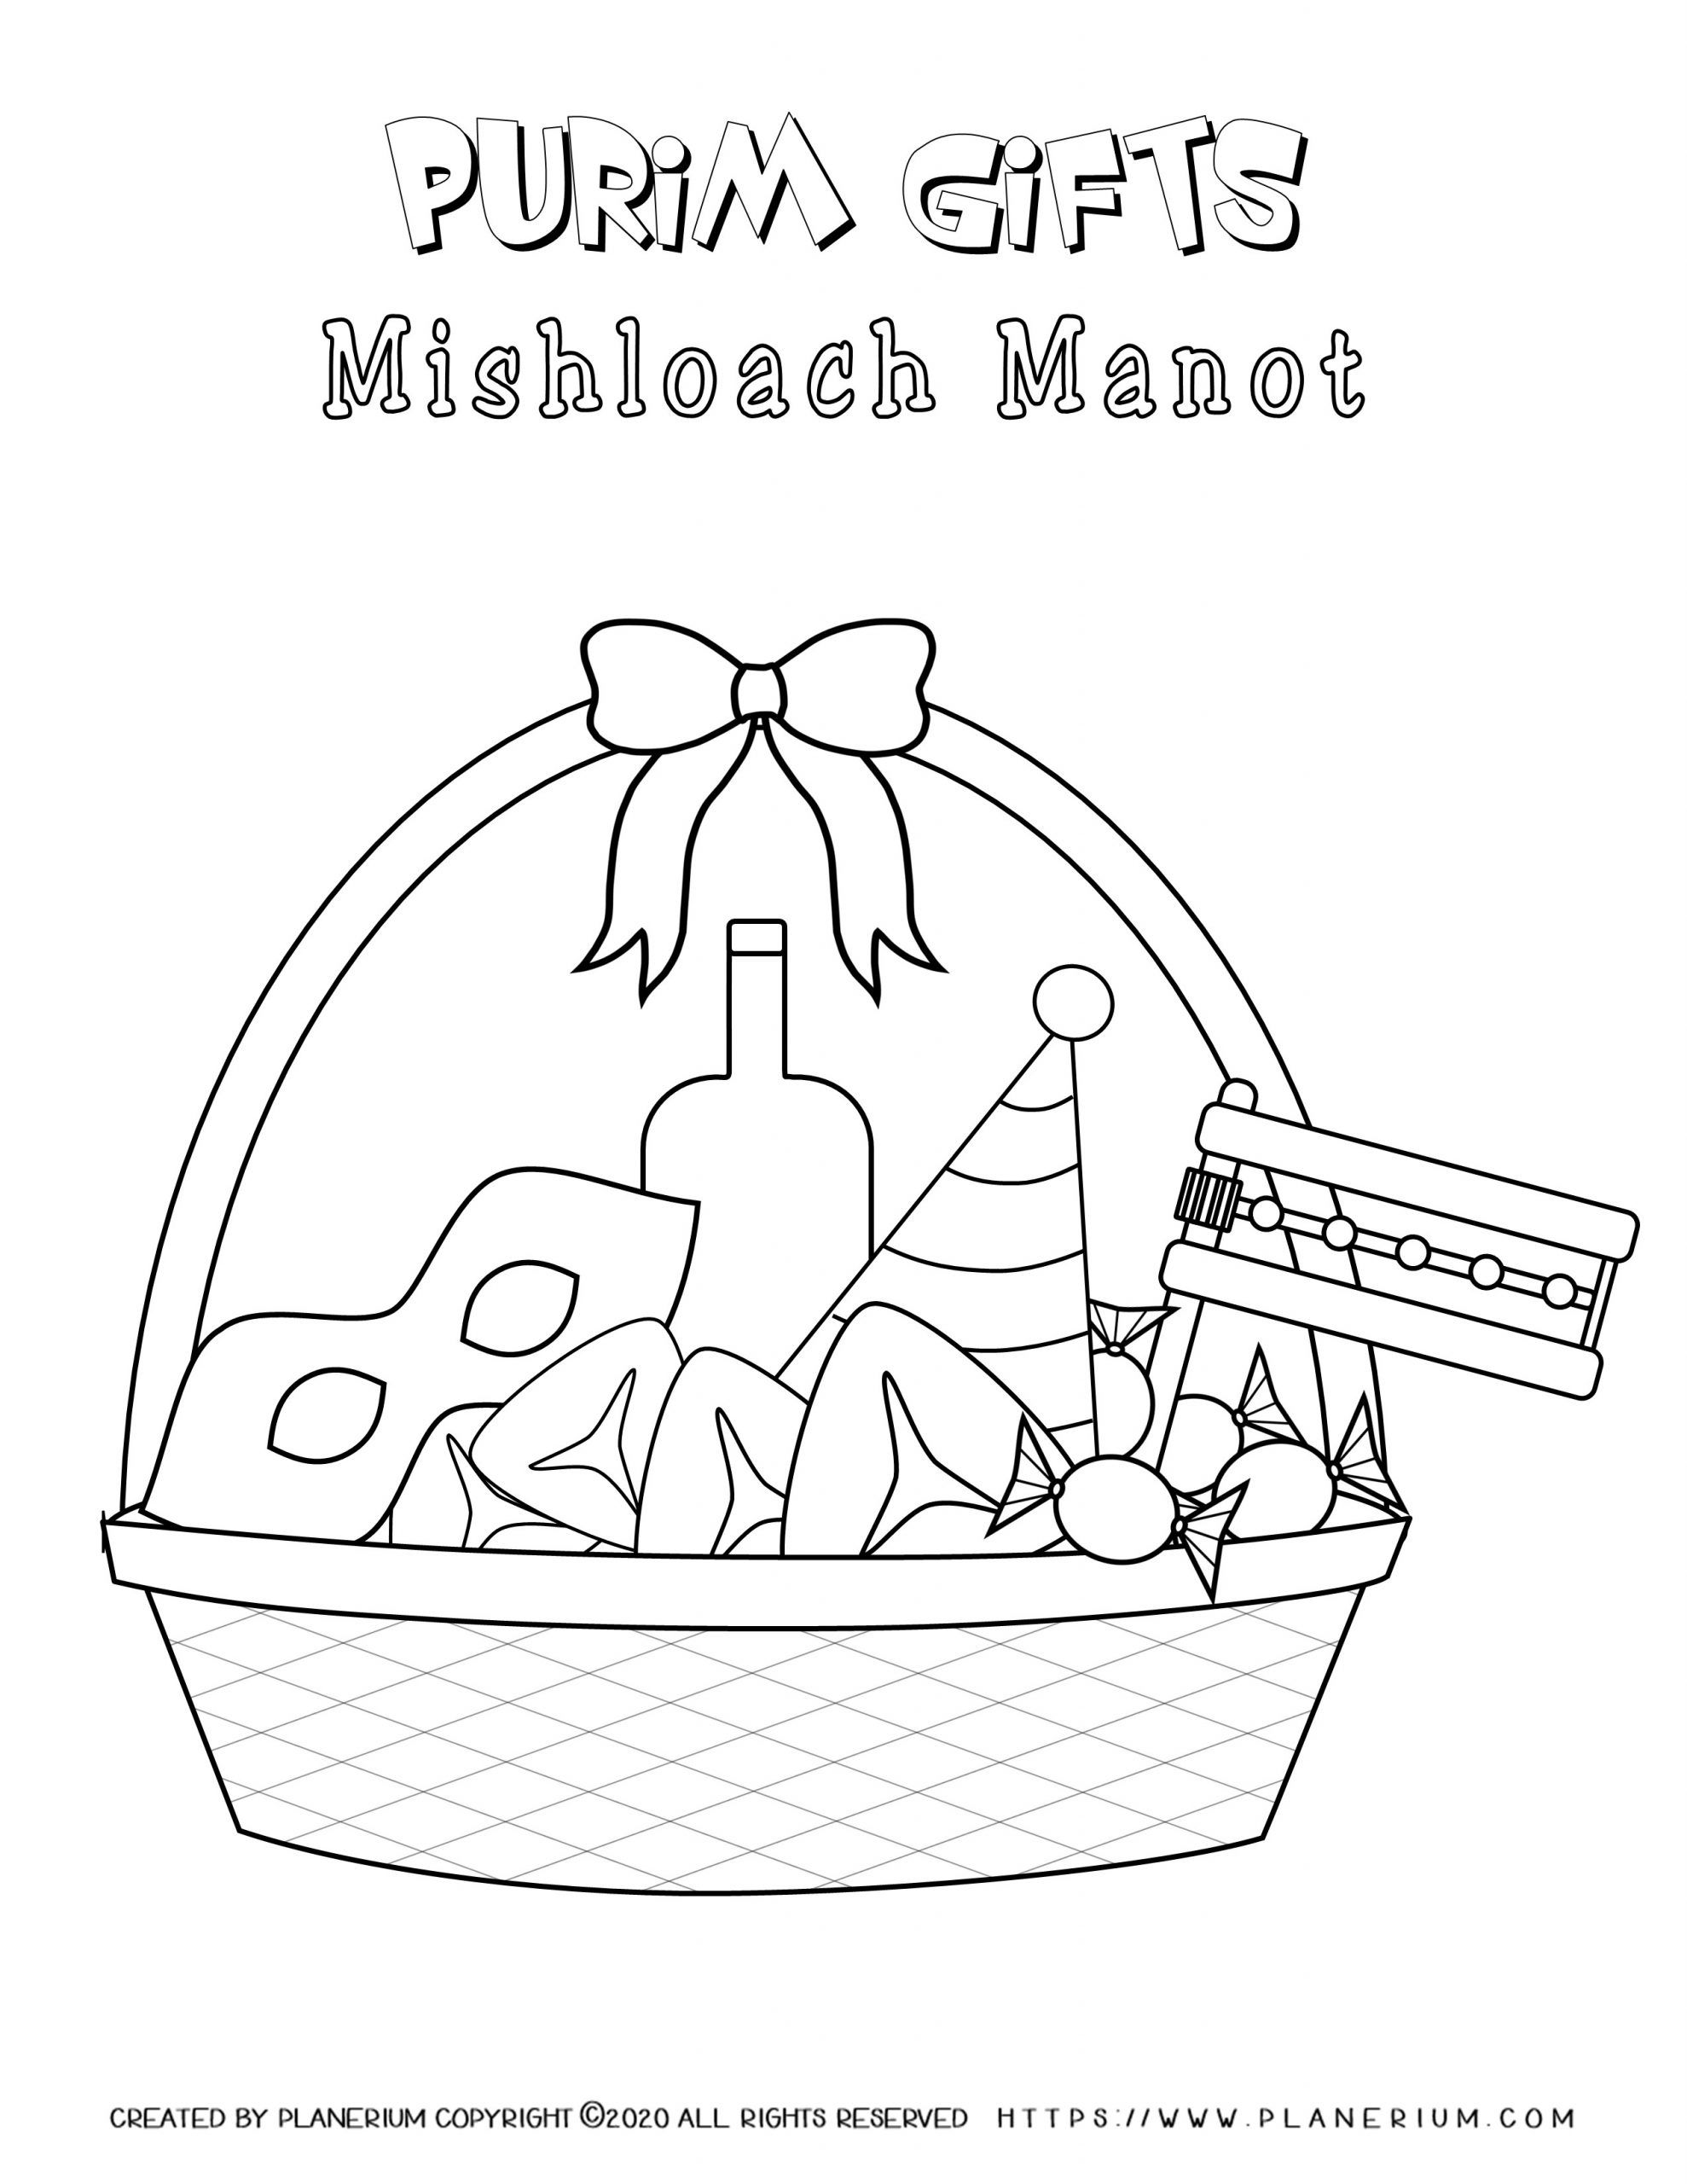 Purim 2020 - Coloring - Mishloach Manot English title